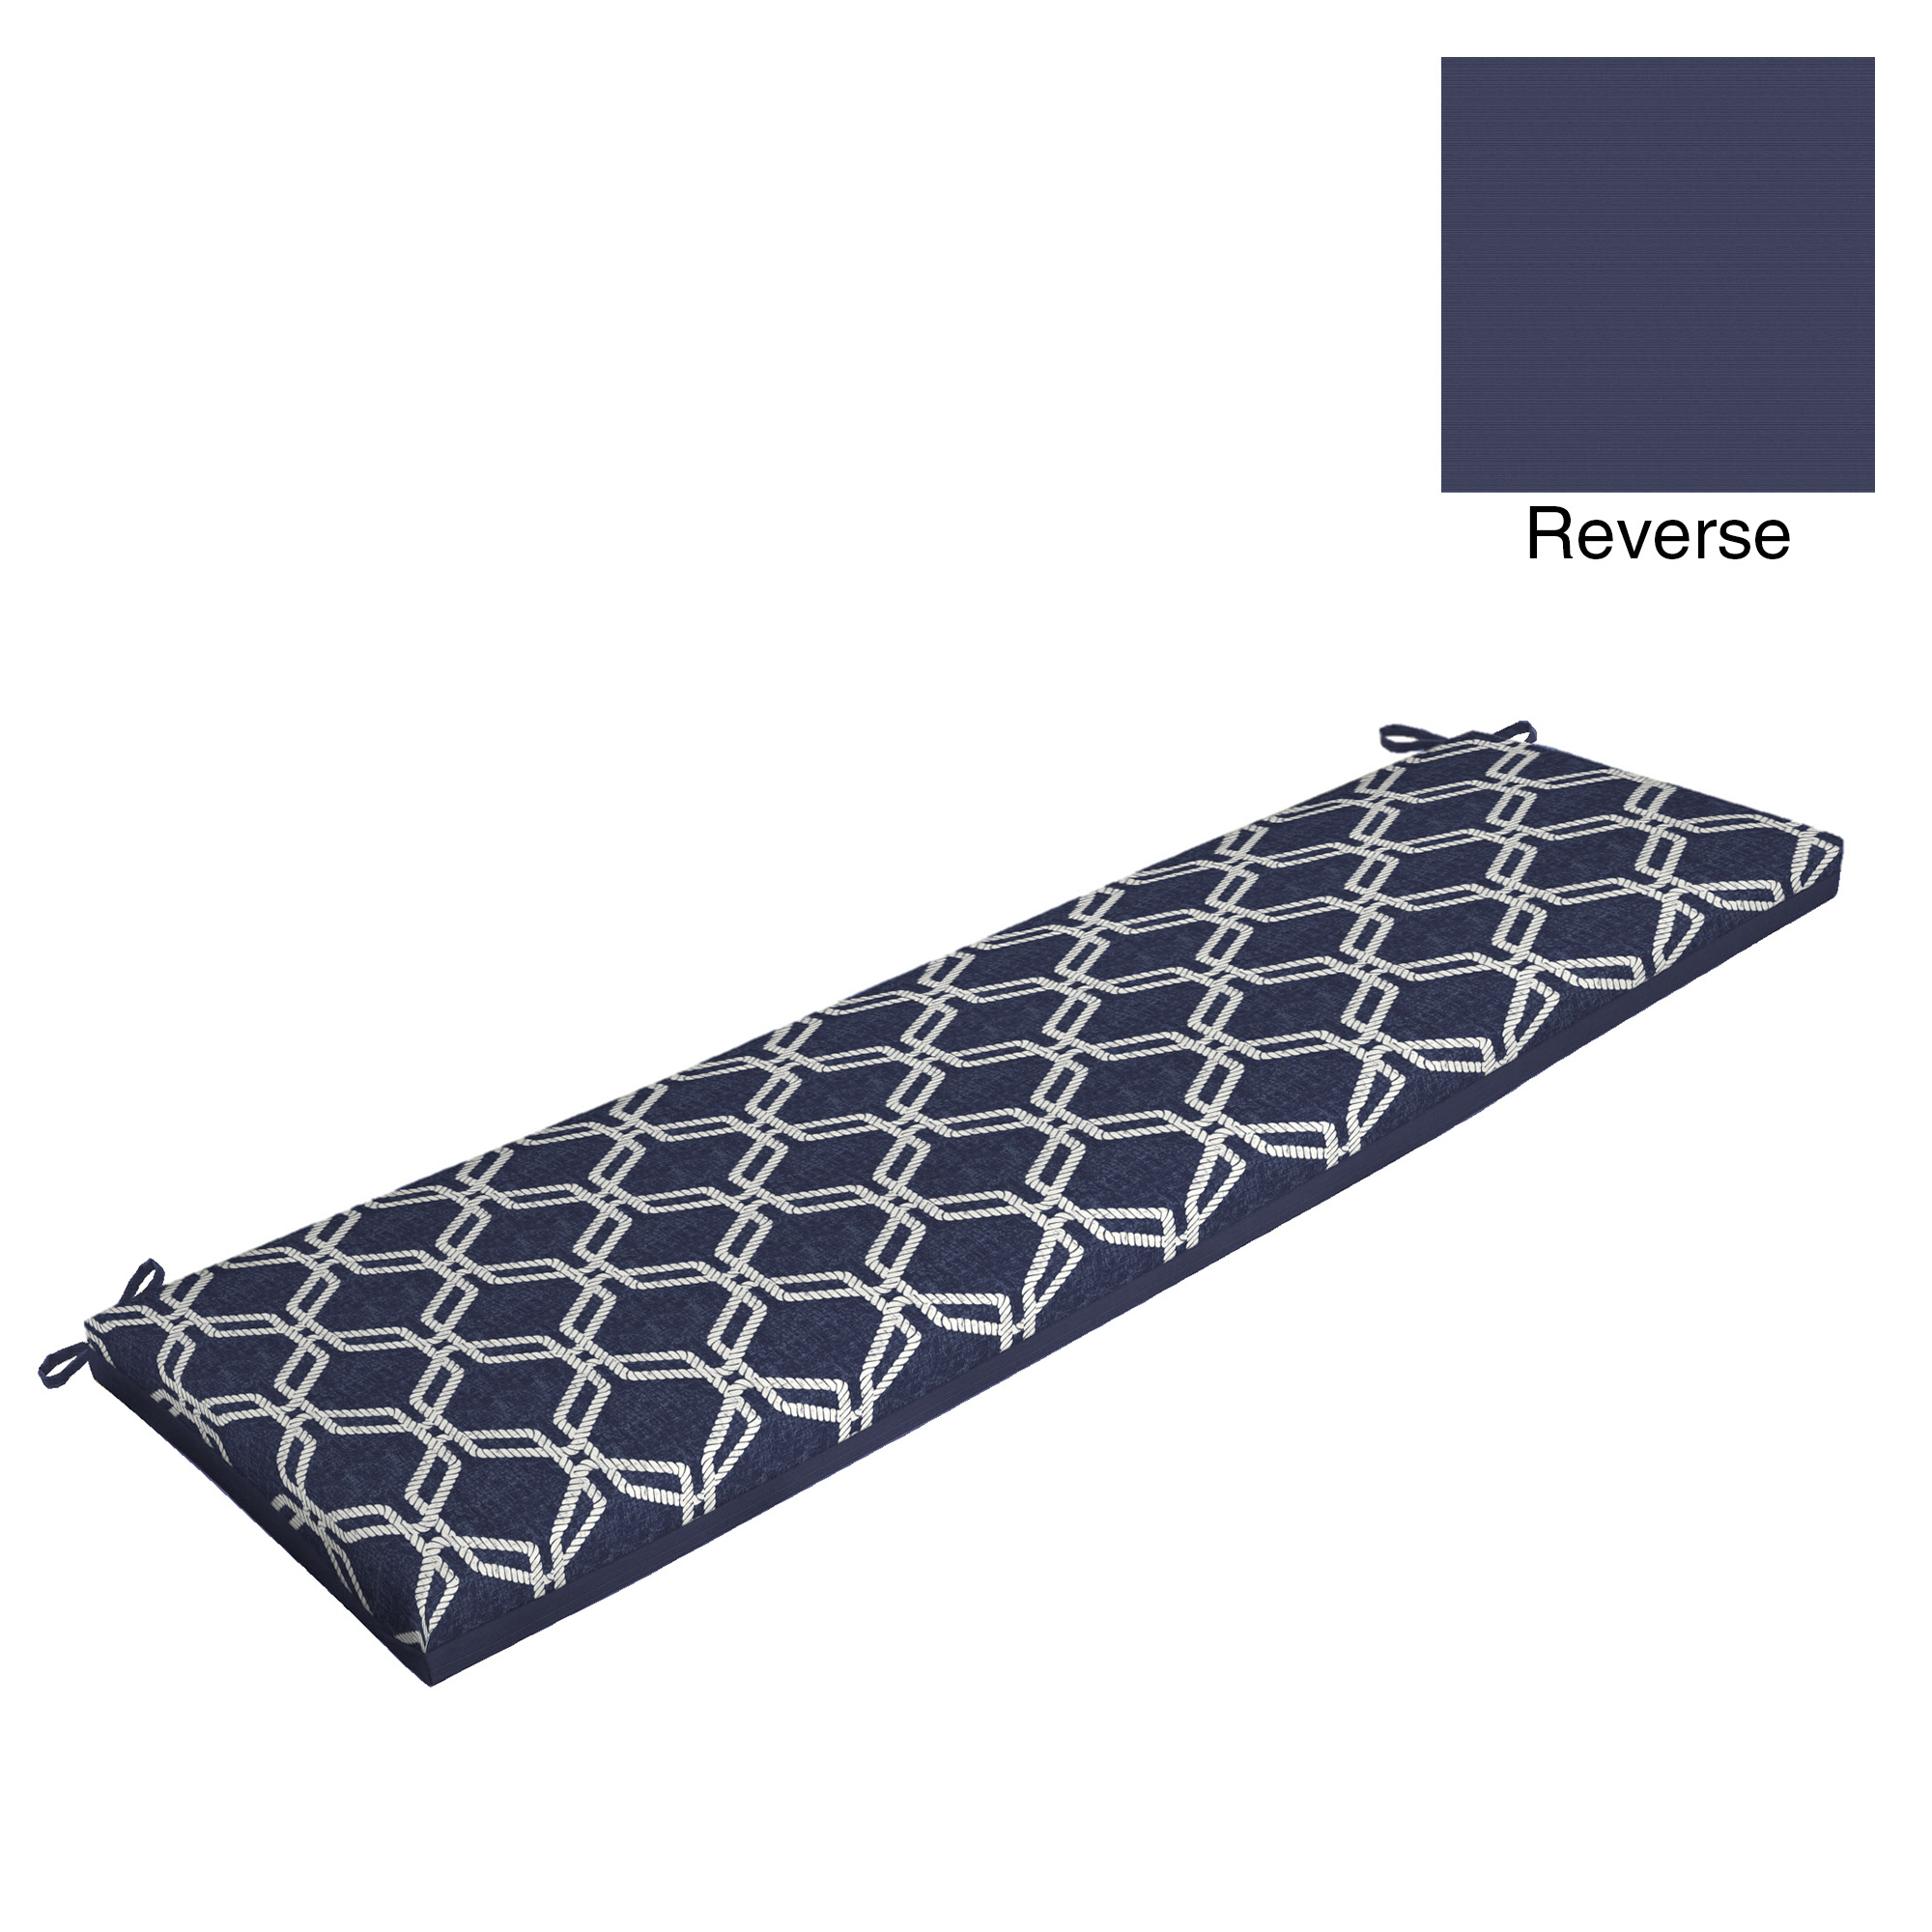 Better Homes & Gardens Hexagon Rope 17 x 46 in. Outdoor Bench Cushion with EnviroGuard